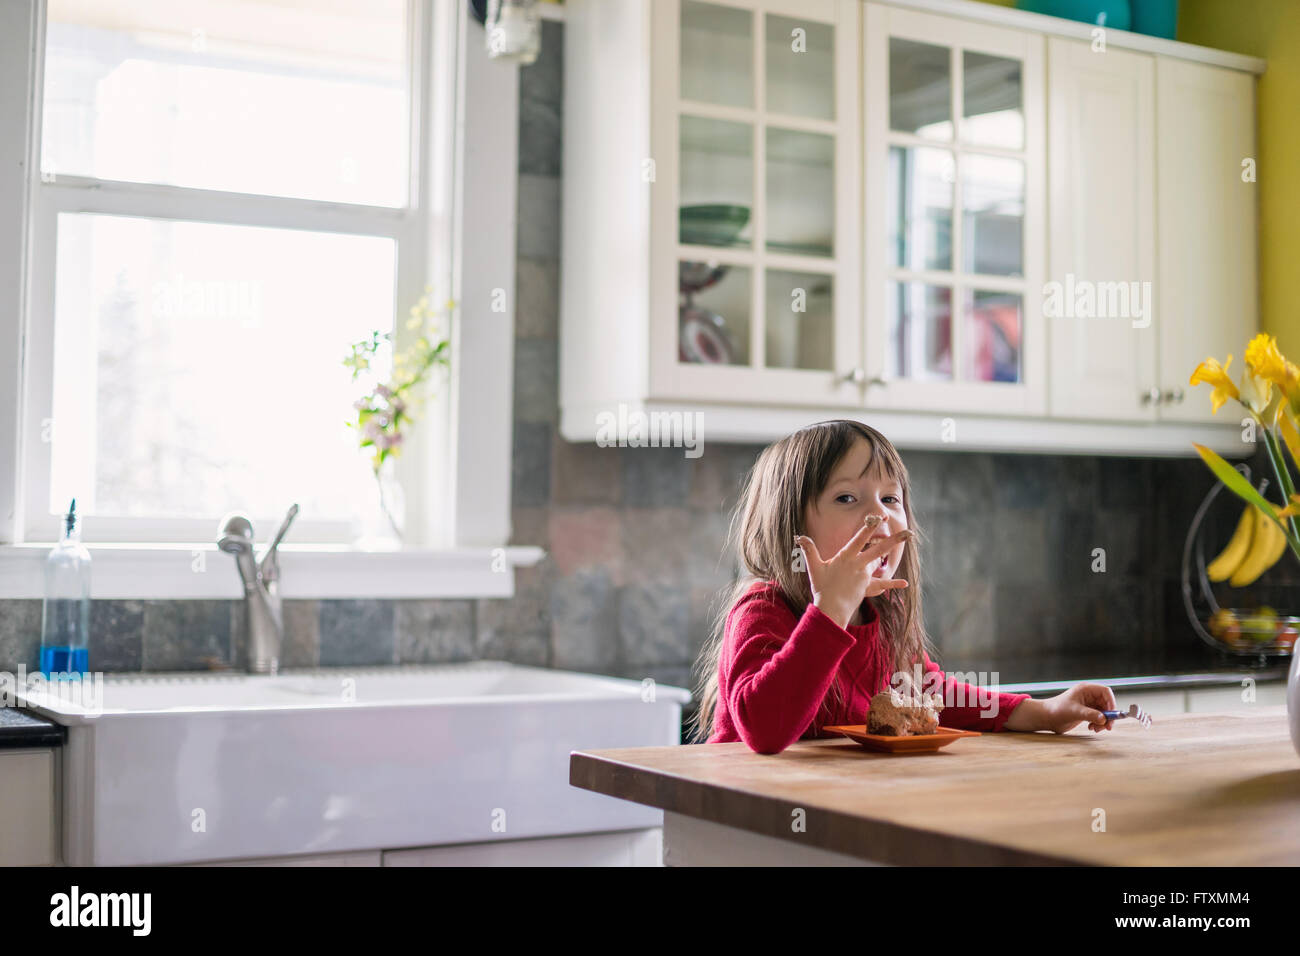 Girl sitting in kitchen eating chocolate dessert and licking fingers - Stock Image